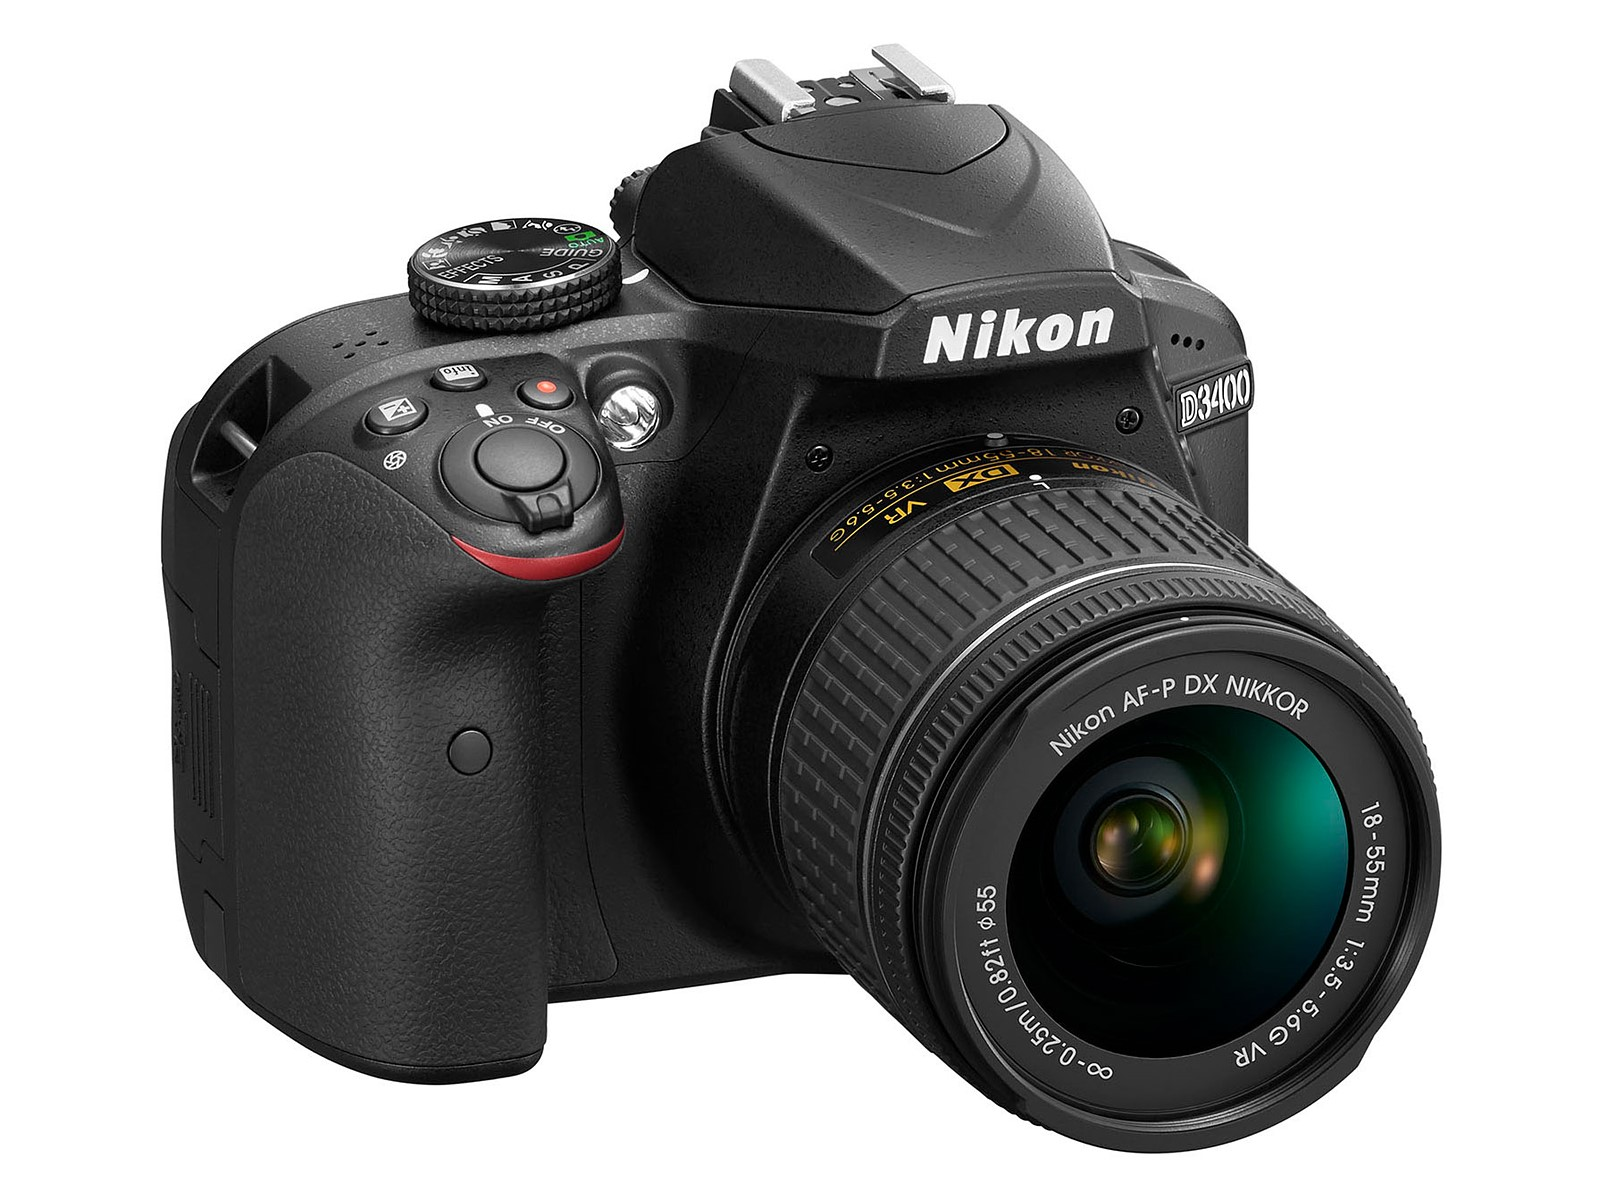 Nikon D3400 DSLR camera becomes official